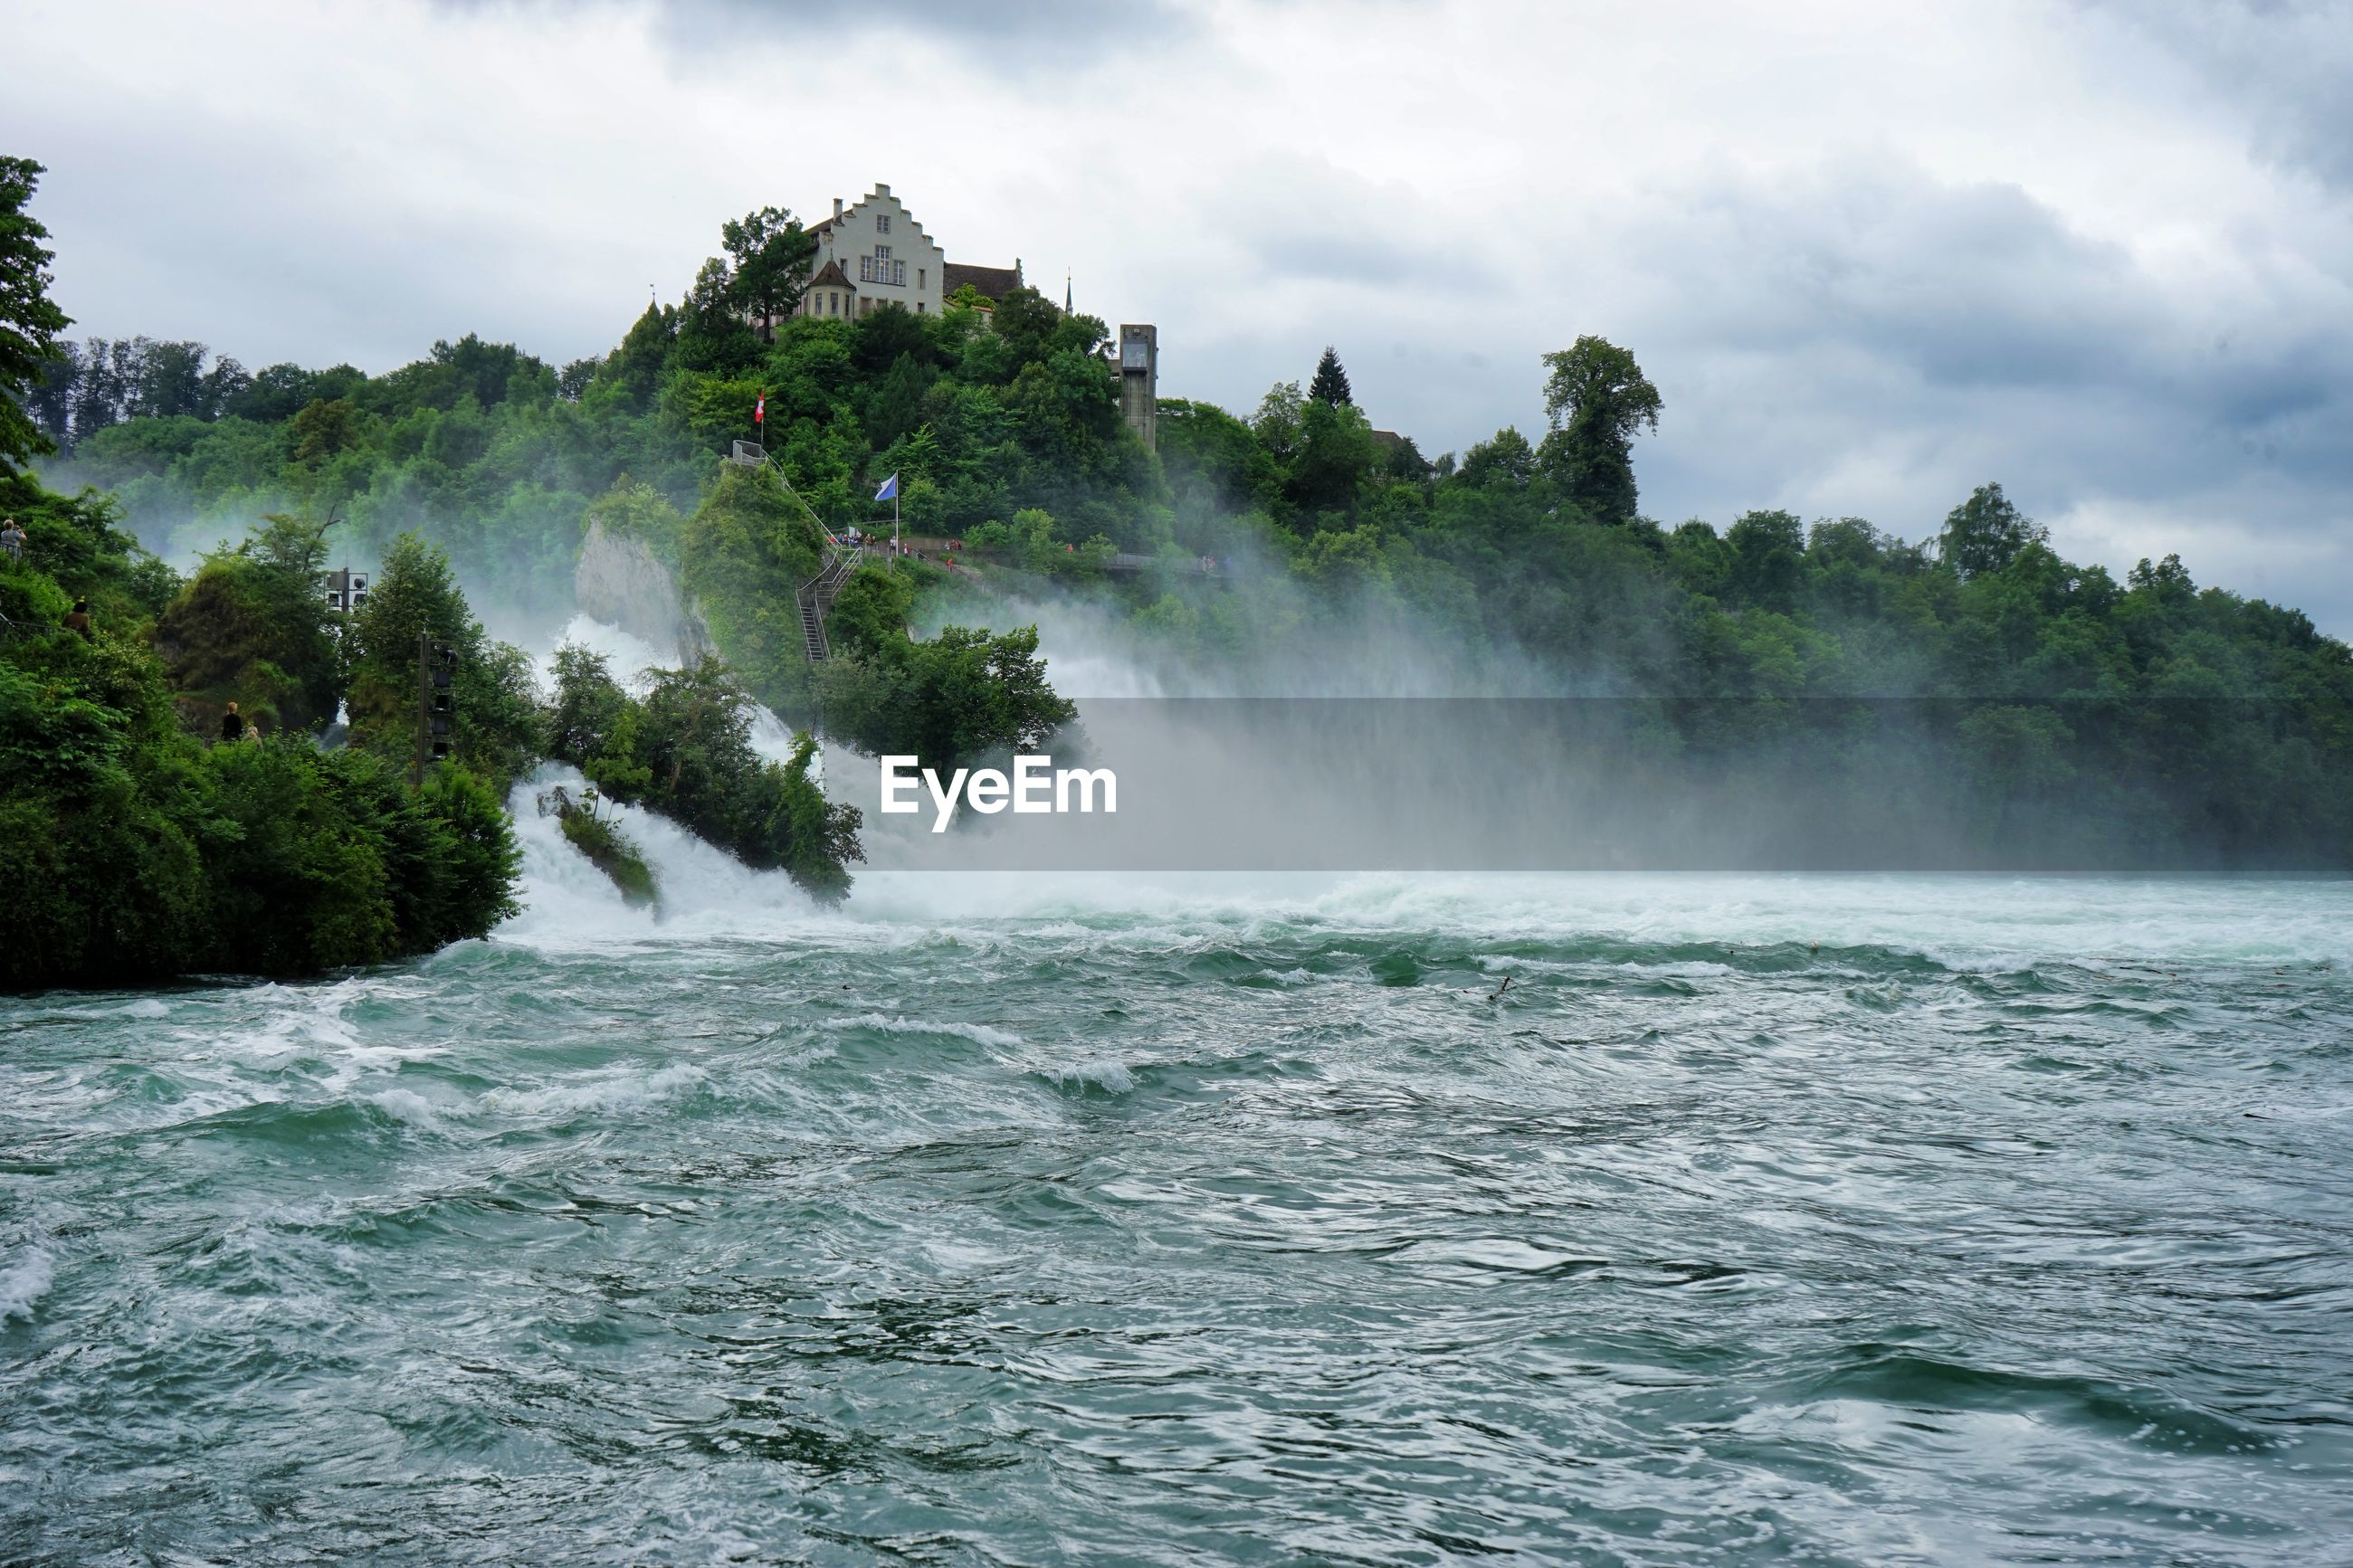 Scenic view of river and trees against cloudy sky